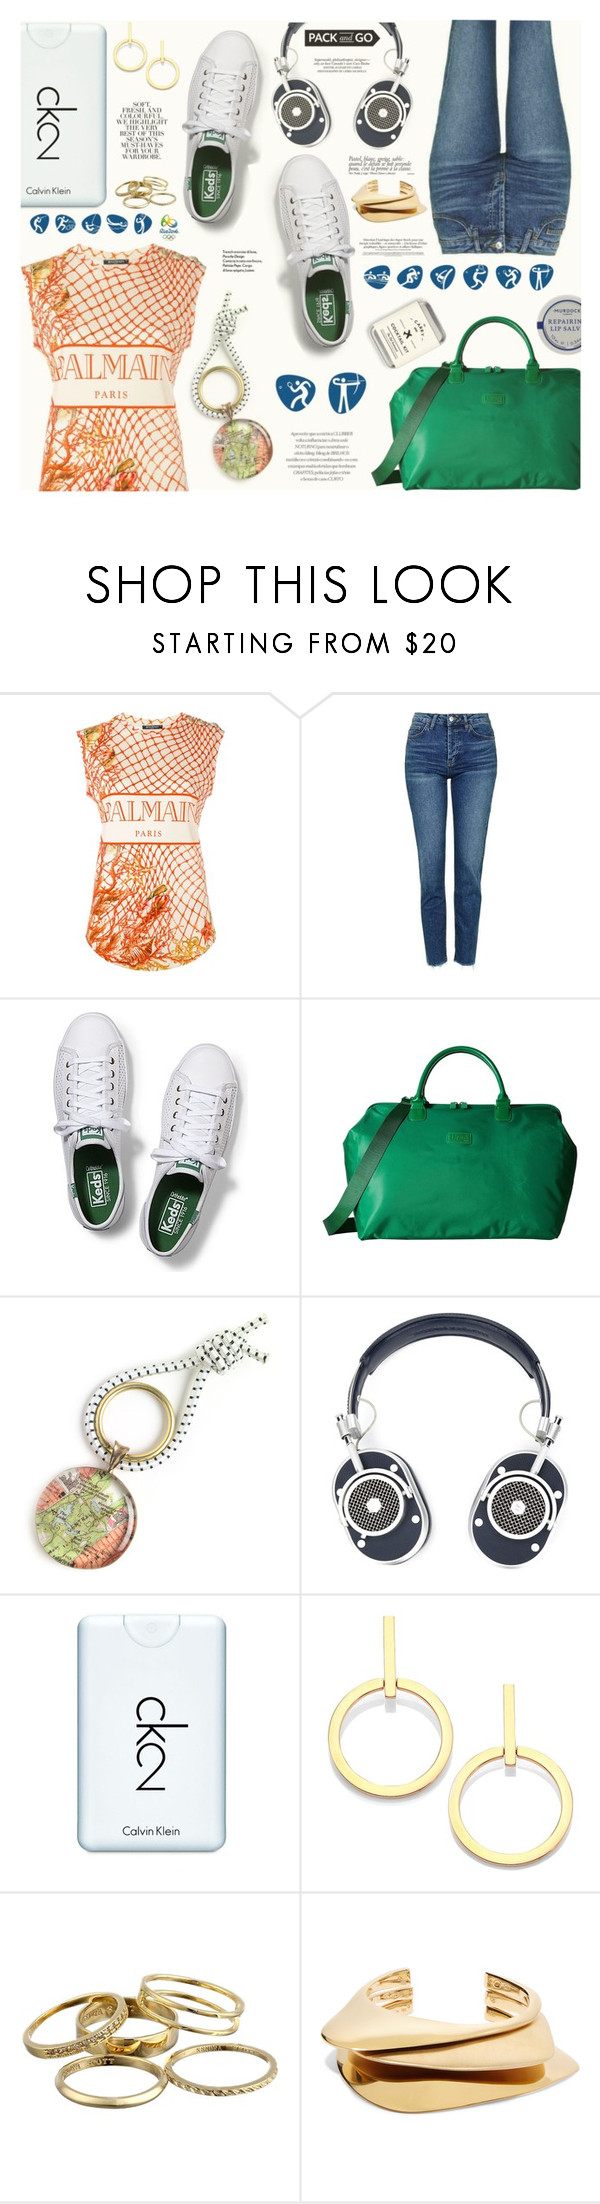 """Pack and Go: Rio"" by katarina-blagojevic ❤ liked on Polyvore featuring Balmain, Topshop, Keds, Lipault, Chart Metal Works, Master & Dynamic, Calvin Klein, Opening Ceremony, Folio and Vita Fede"